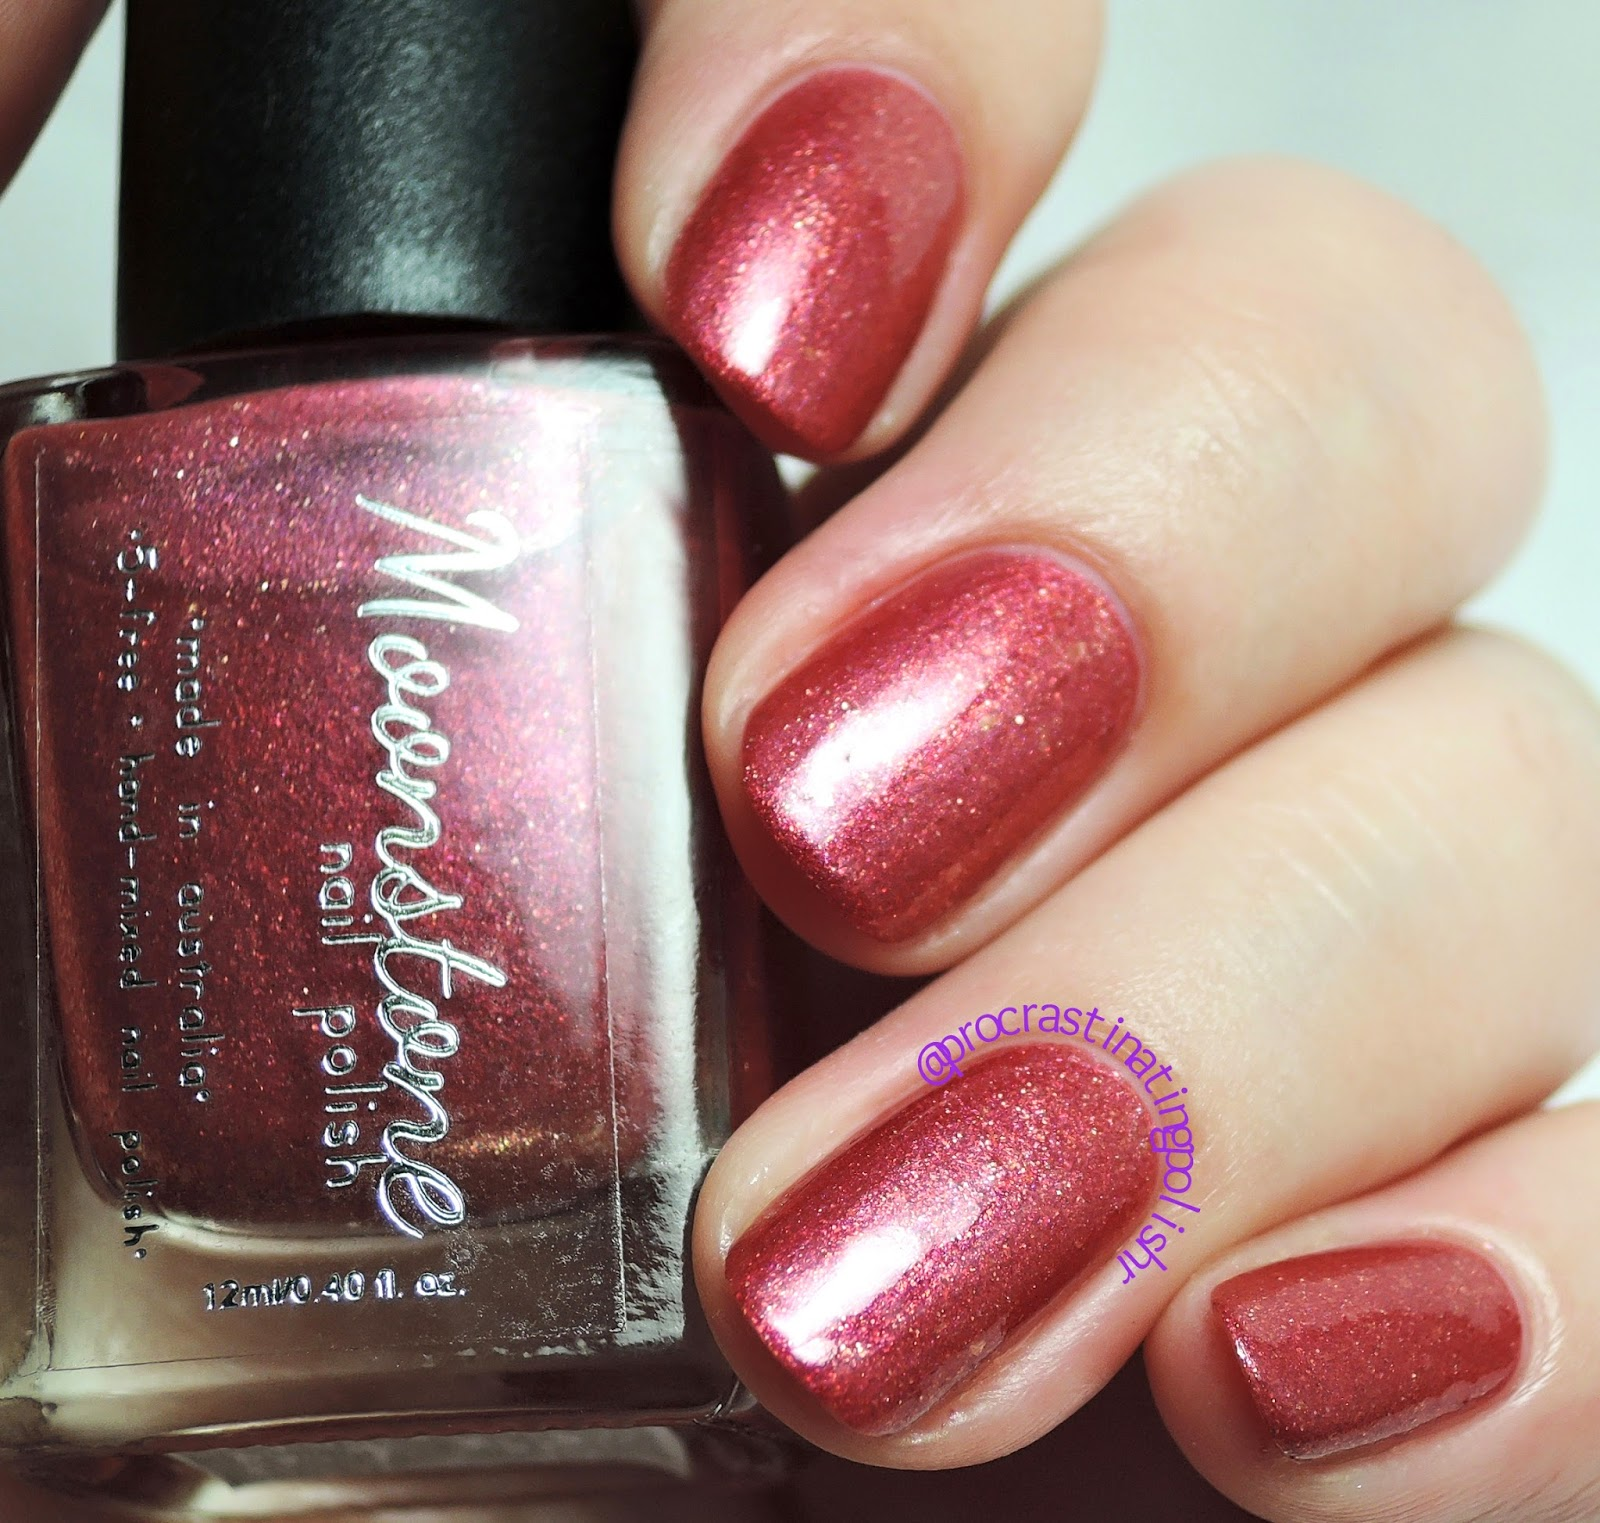 Moonstone Nail Polish - Ginevra | Wicked Witches collection